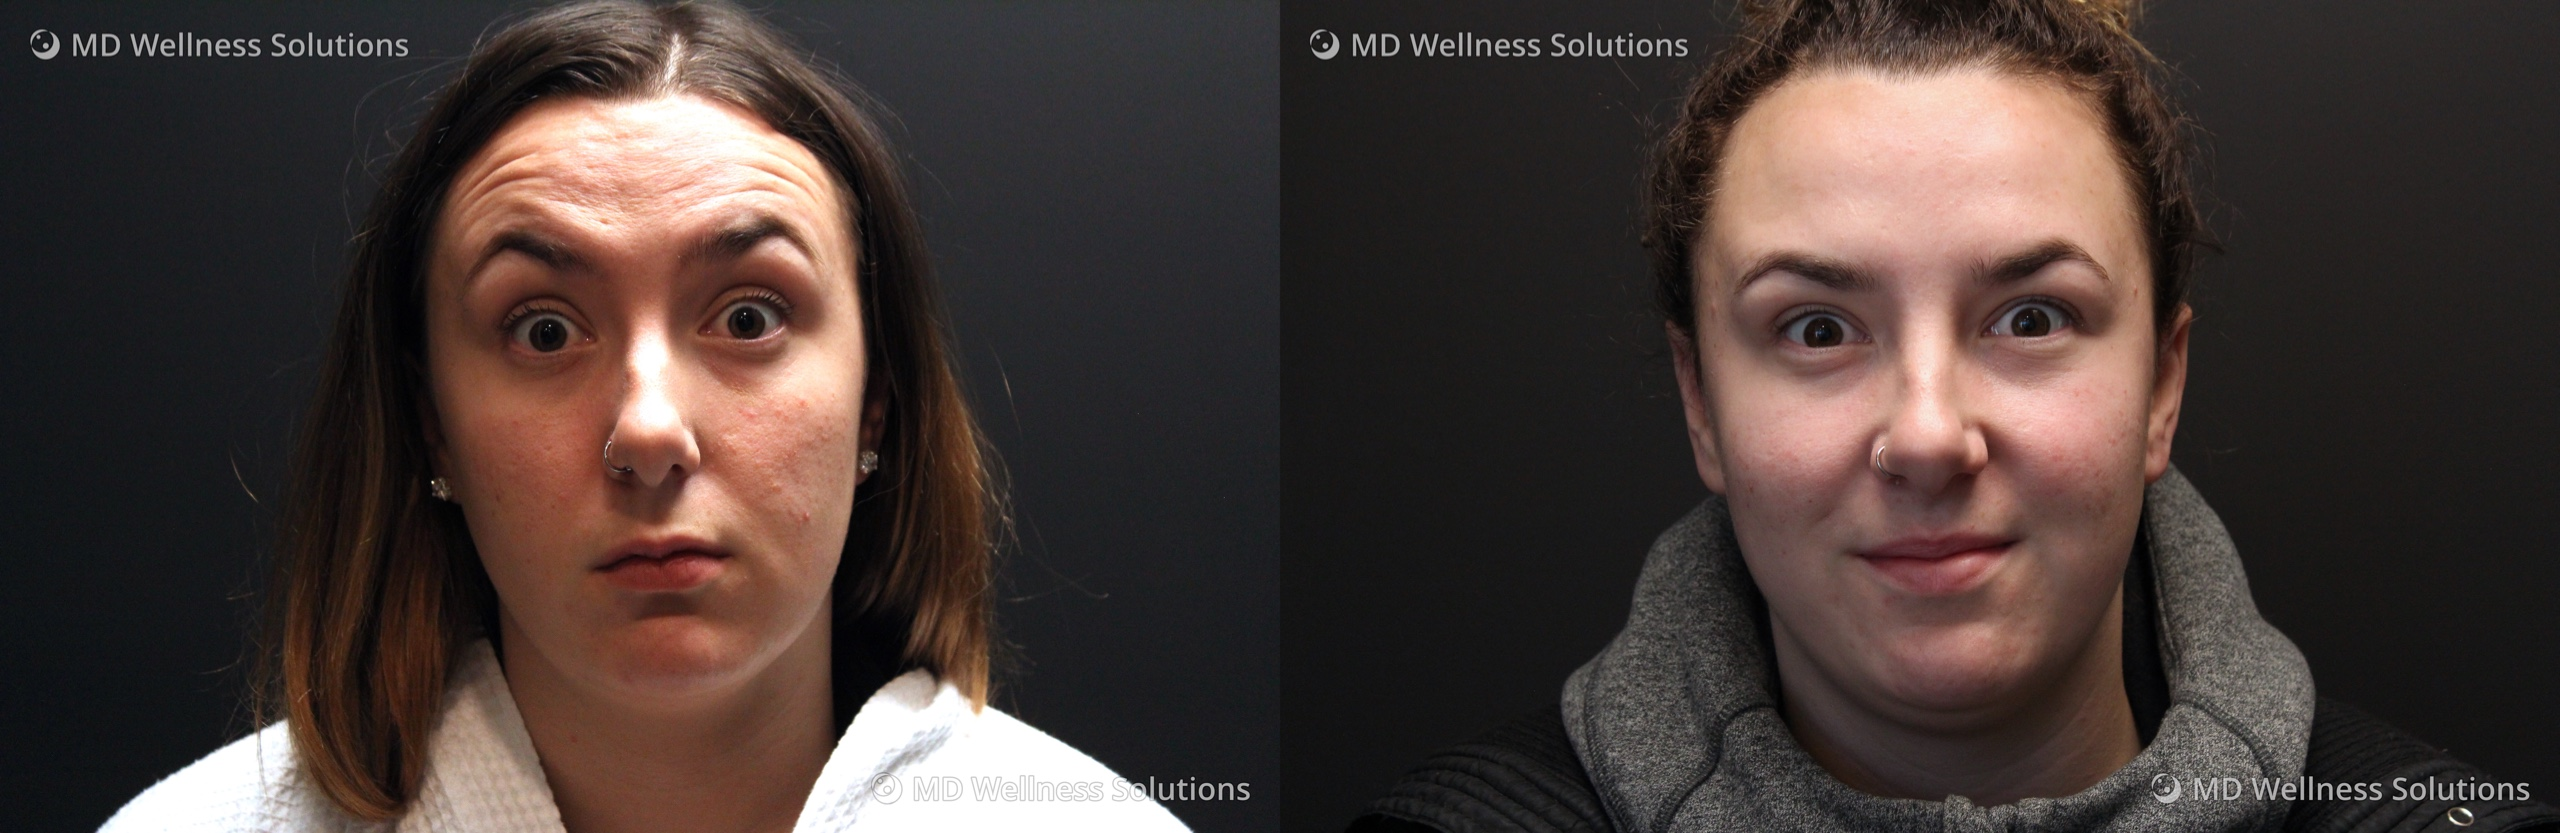 25-34 year old woman before and after neurotoxin treatment